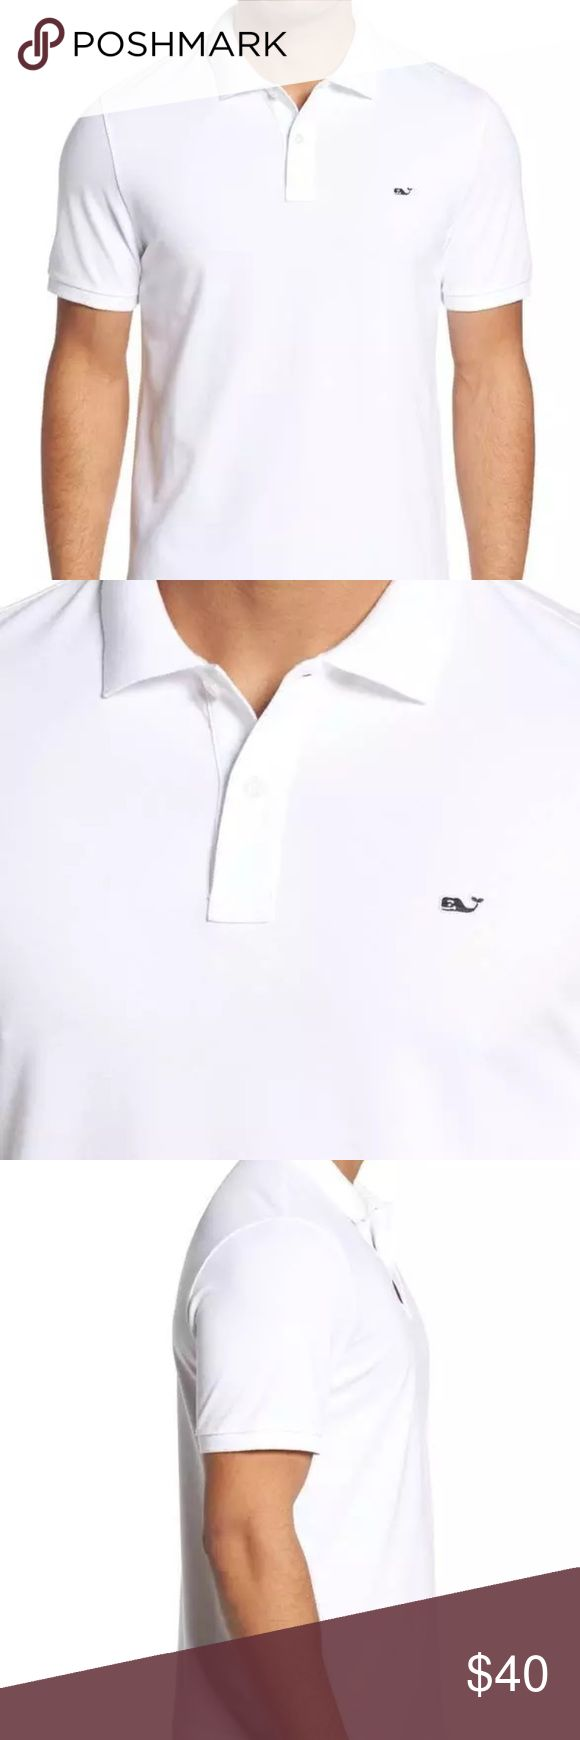 VINEYARD VINES REGULAR FIT PIQUE POLO WHITE XL VINEYARD VINES   REGULAR FIT PIQUE POLO  SIZE :XL  COLOR: WHITE   NEW WITHOUT TAGS  TRIED ON AT NORDSTROM, THIS MEANS THE ITEM MAY HAVE BUT NOT LIMITED TO DEODORANT MARKS, MARKS, PERFUME SMELL OR SNAG (S) Vineyard Vines Shirts Polos